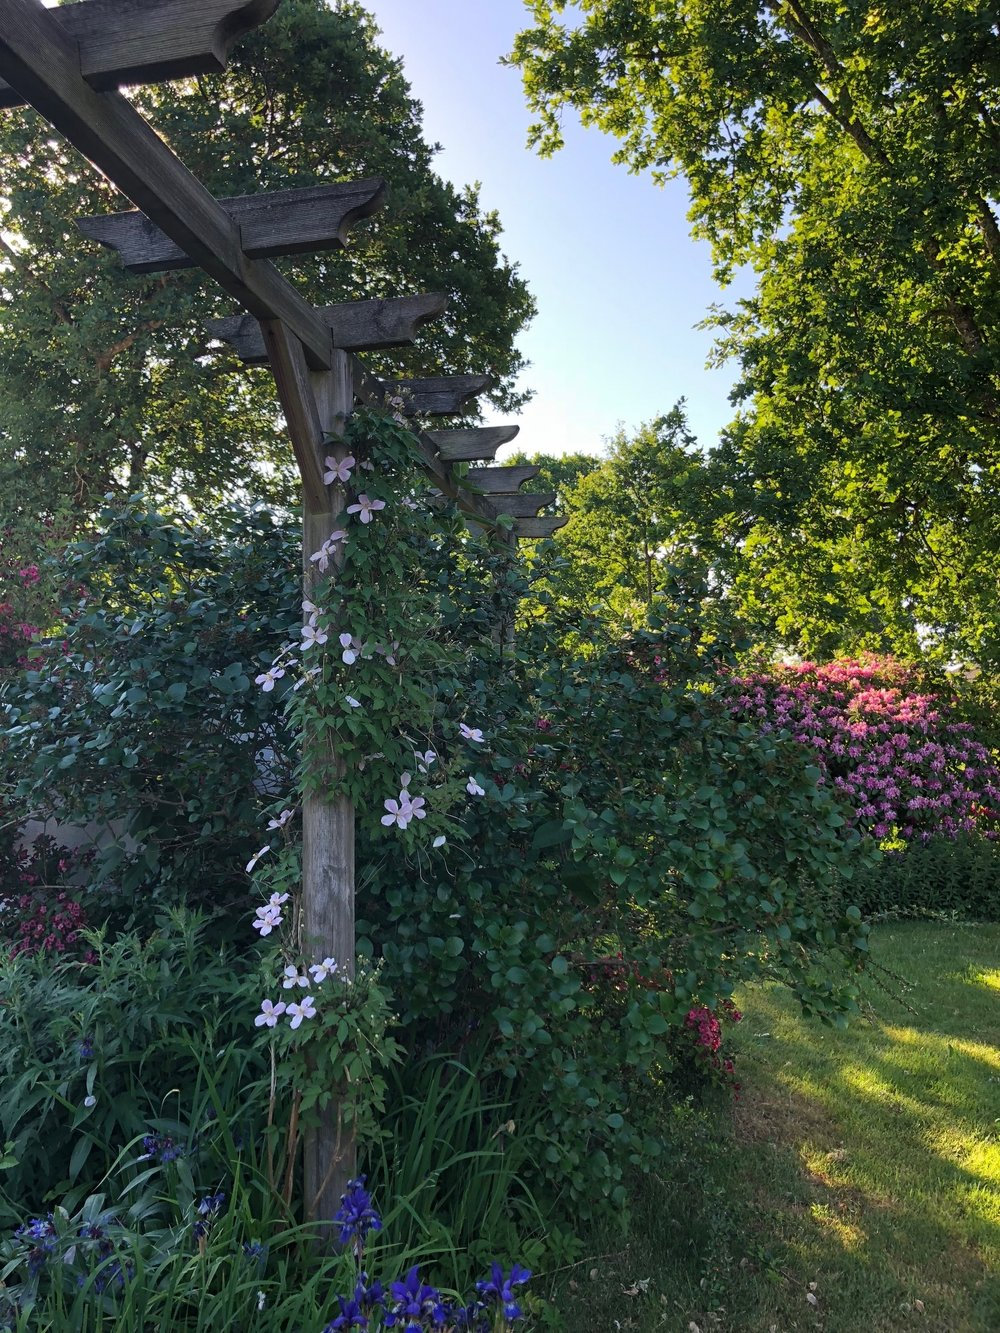 The garden is alive with flowers, birds and insects. Arild, Sweden.